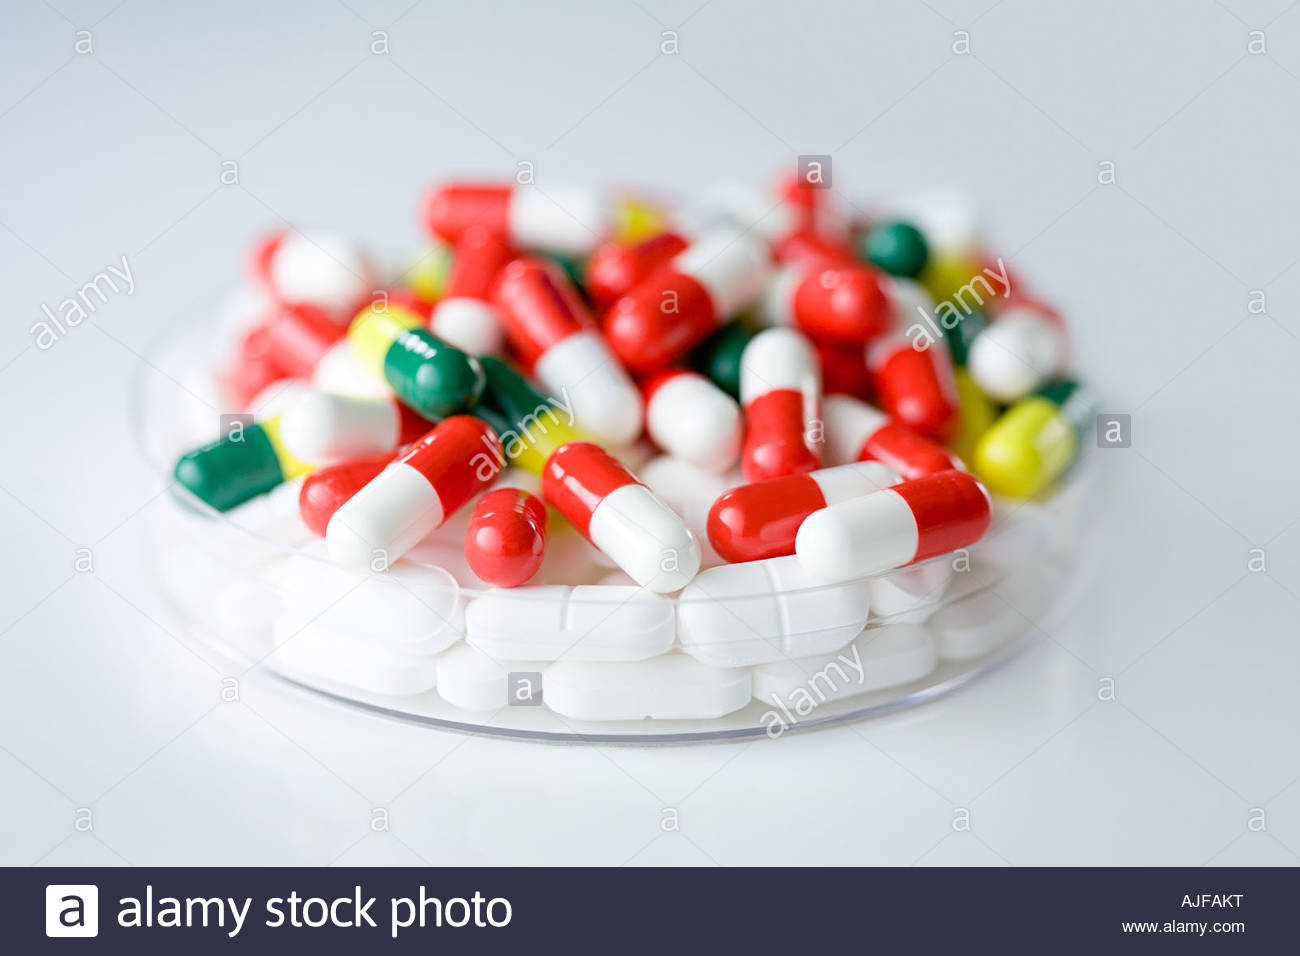 Tablets in a petri dish - Stock Image